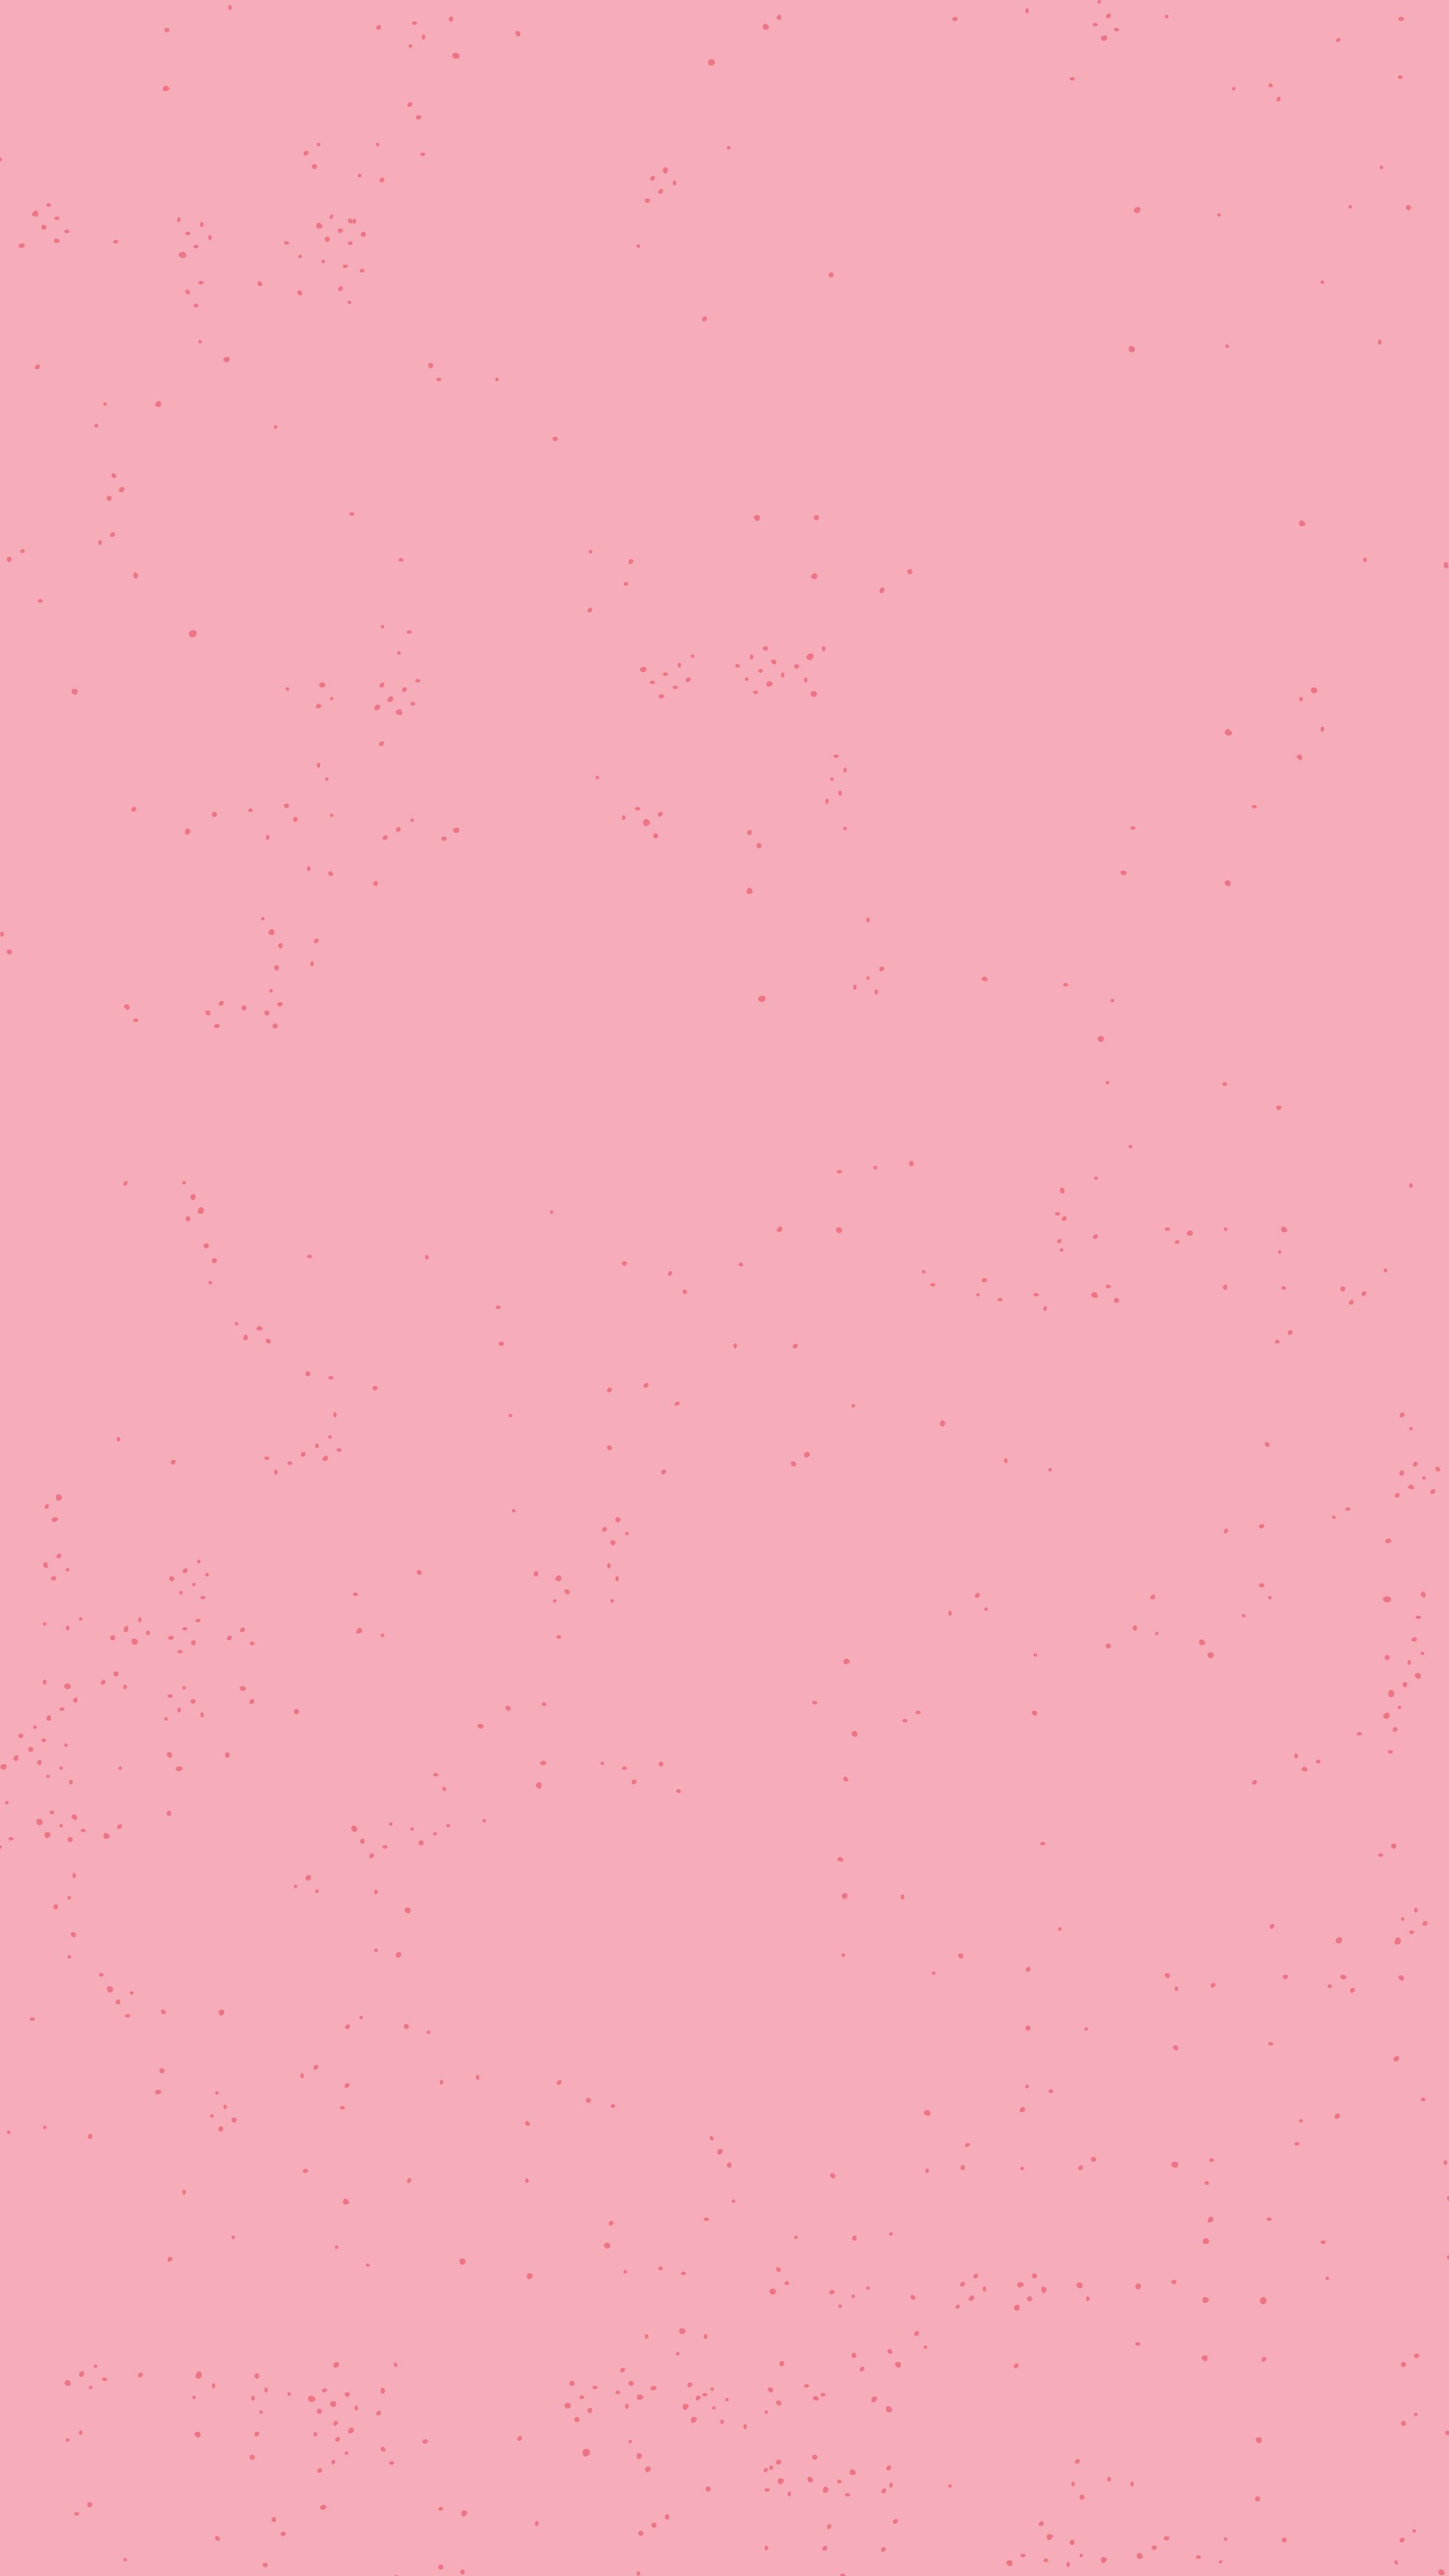 Pink Sweet Chocolate Iphone Wallpaper Home Screen Panpins Kertas Dinding Ide Warna